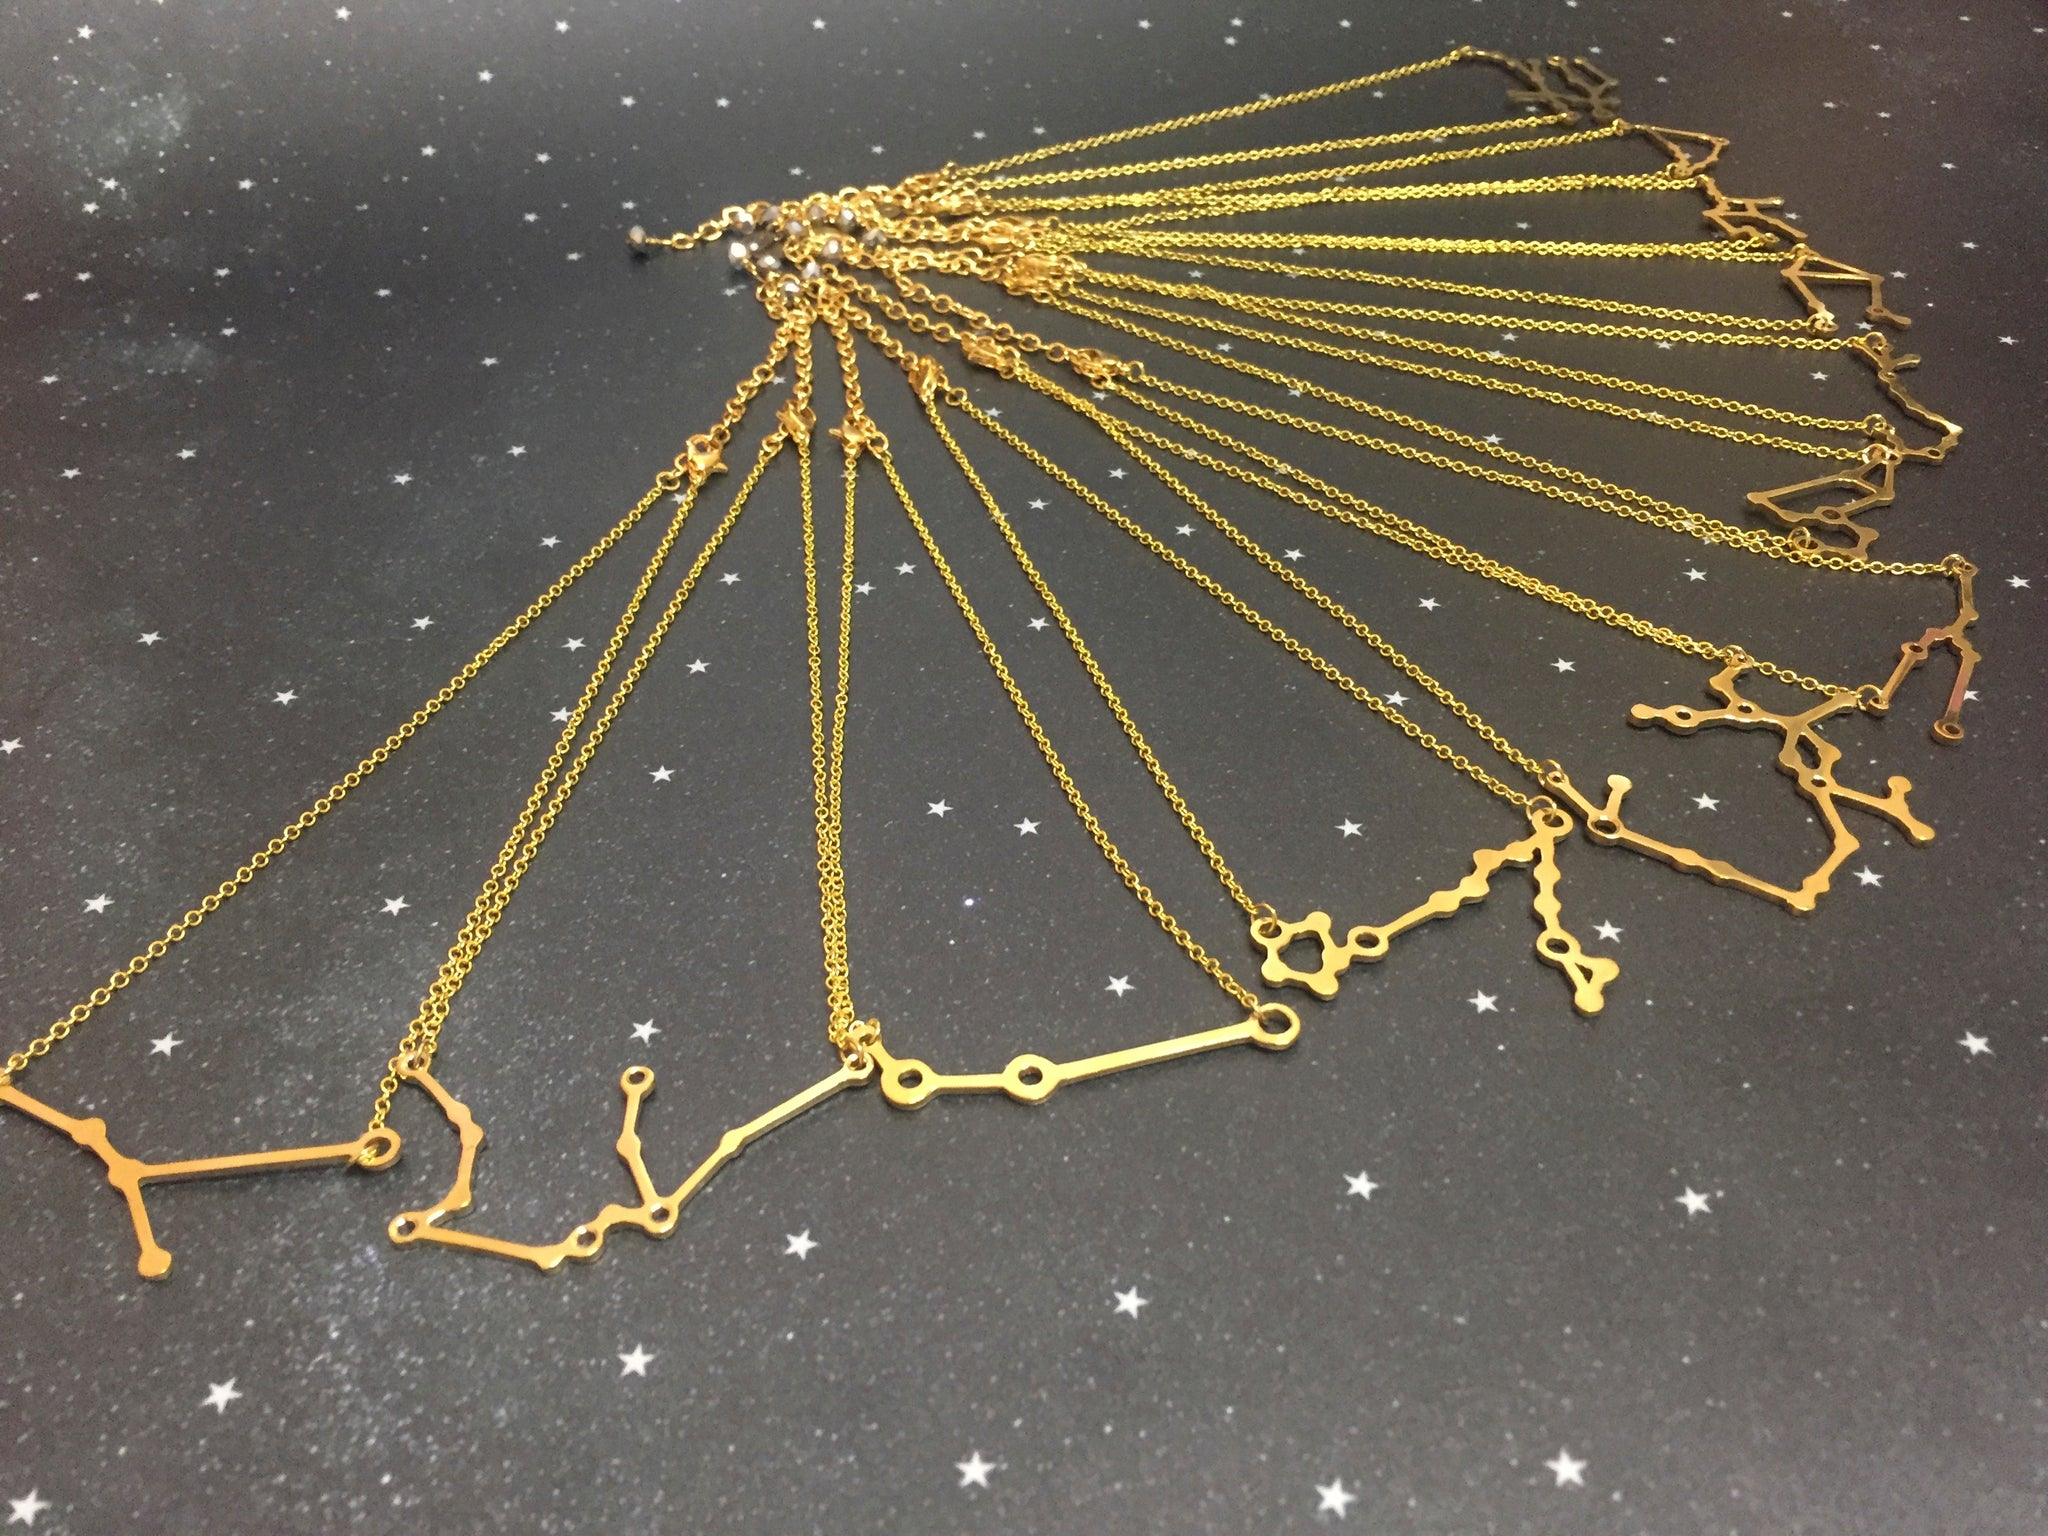 Gold 'VIRGO' Chain - Riddhika Jesrani